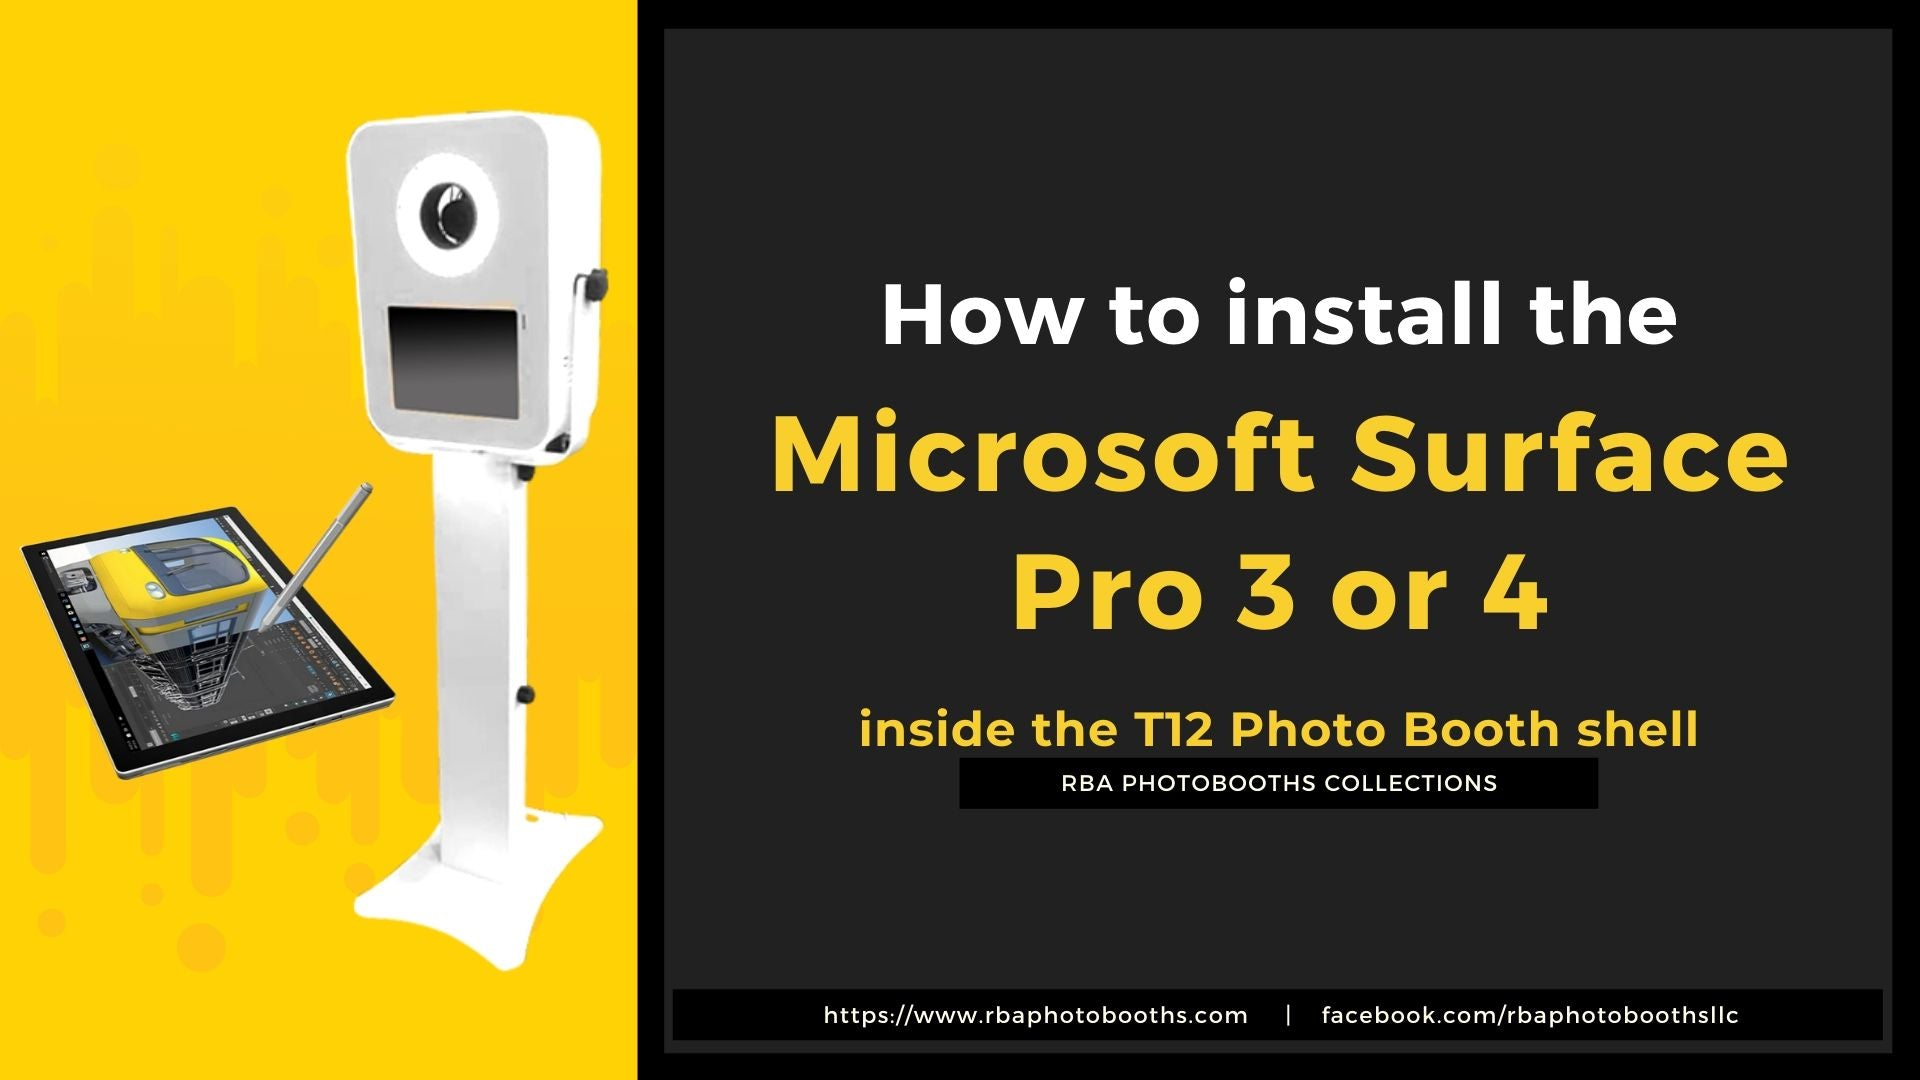 How to Install The Microsoft Surface Pro 3 or 4 Inside The T12 LED Photobooth